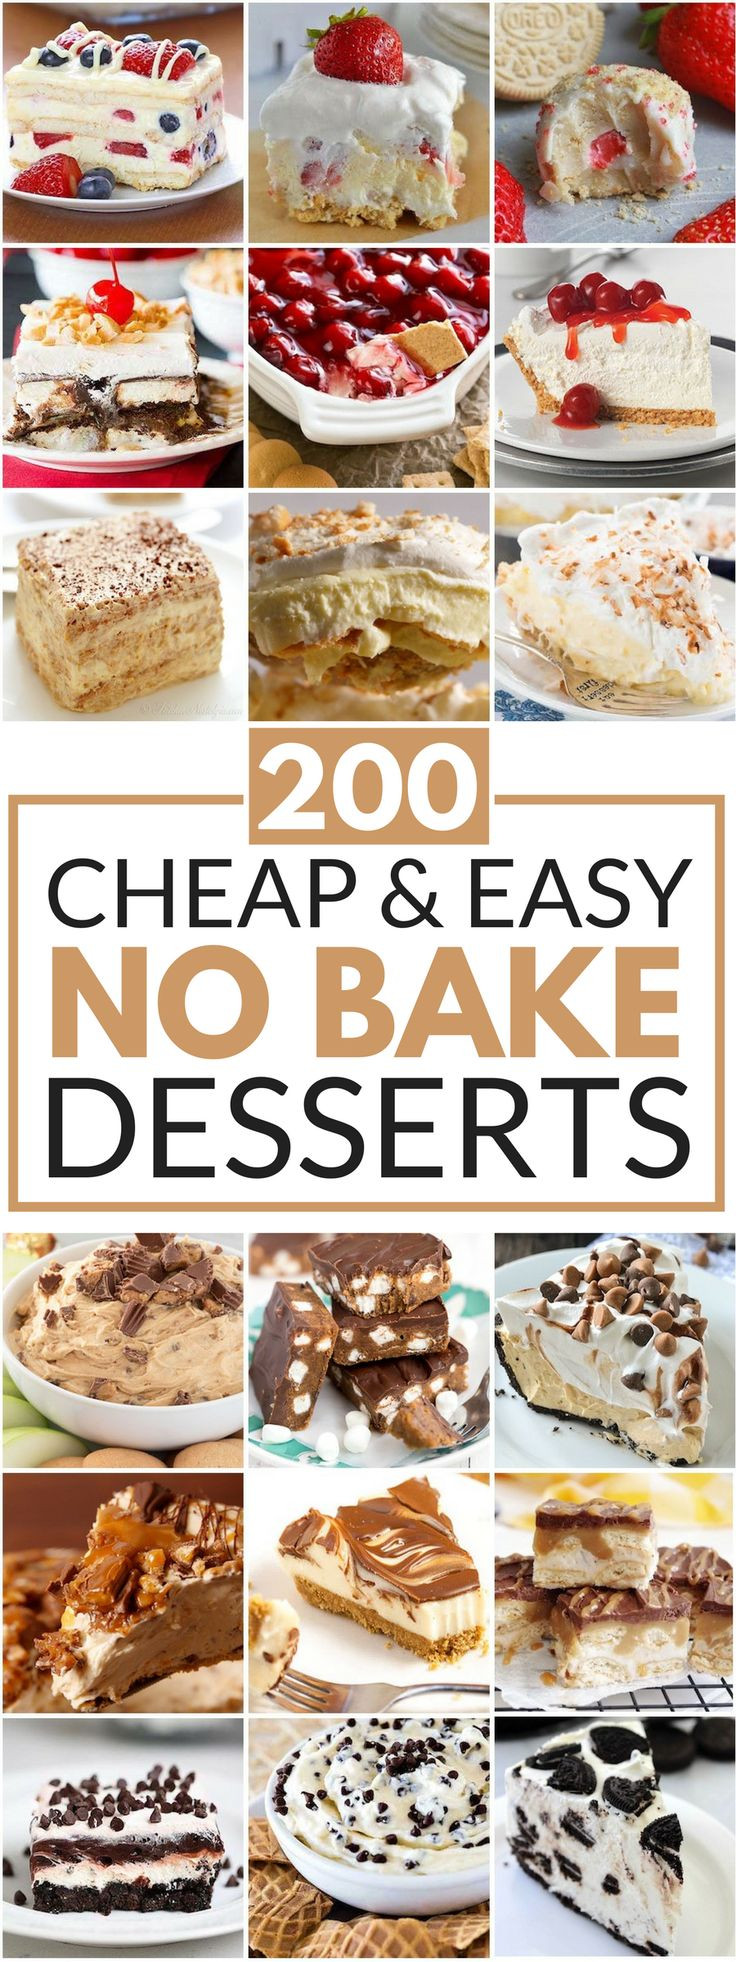 Easy Bake Desserts  25 best ideas about Easy cheap desserts on Pinterest